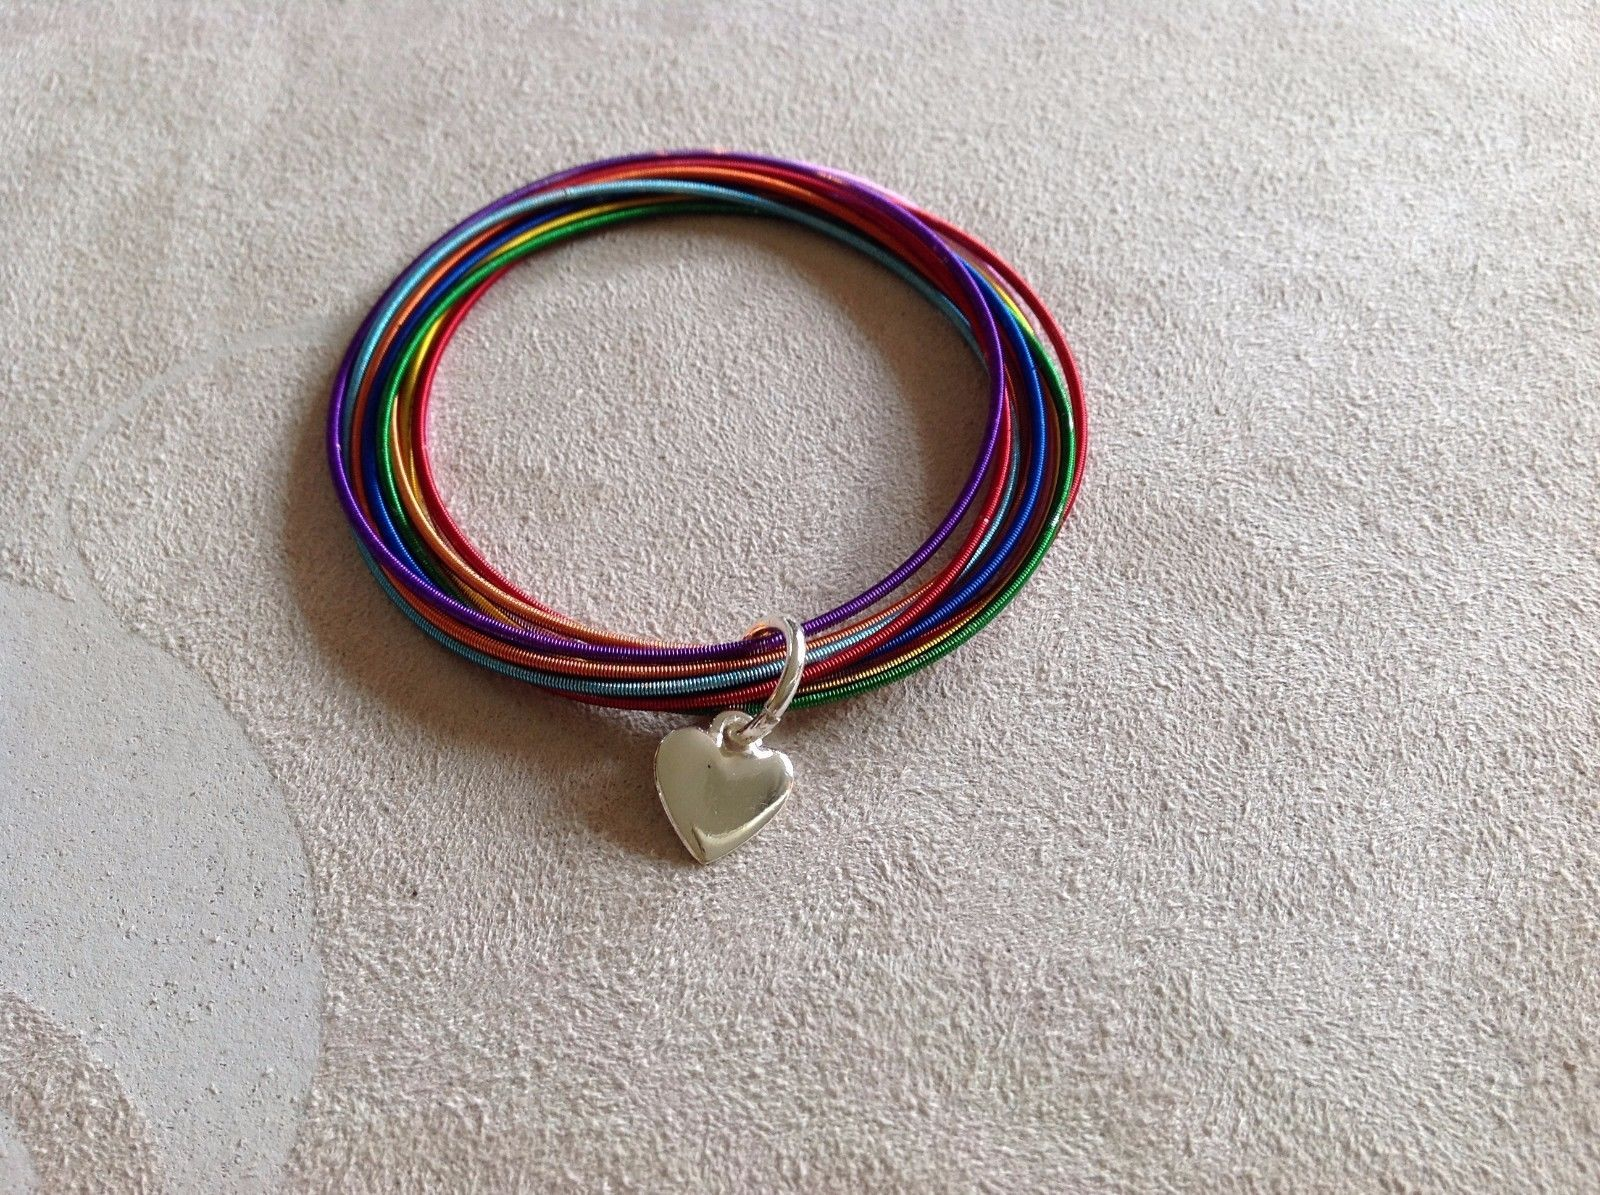 New Allure Rainbow Bracelet With Silver Toned Heart Pendant